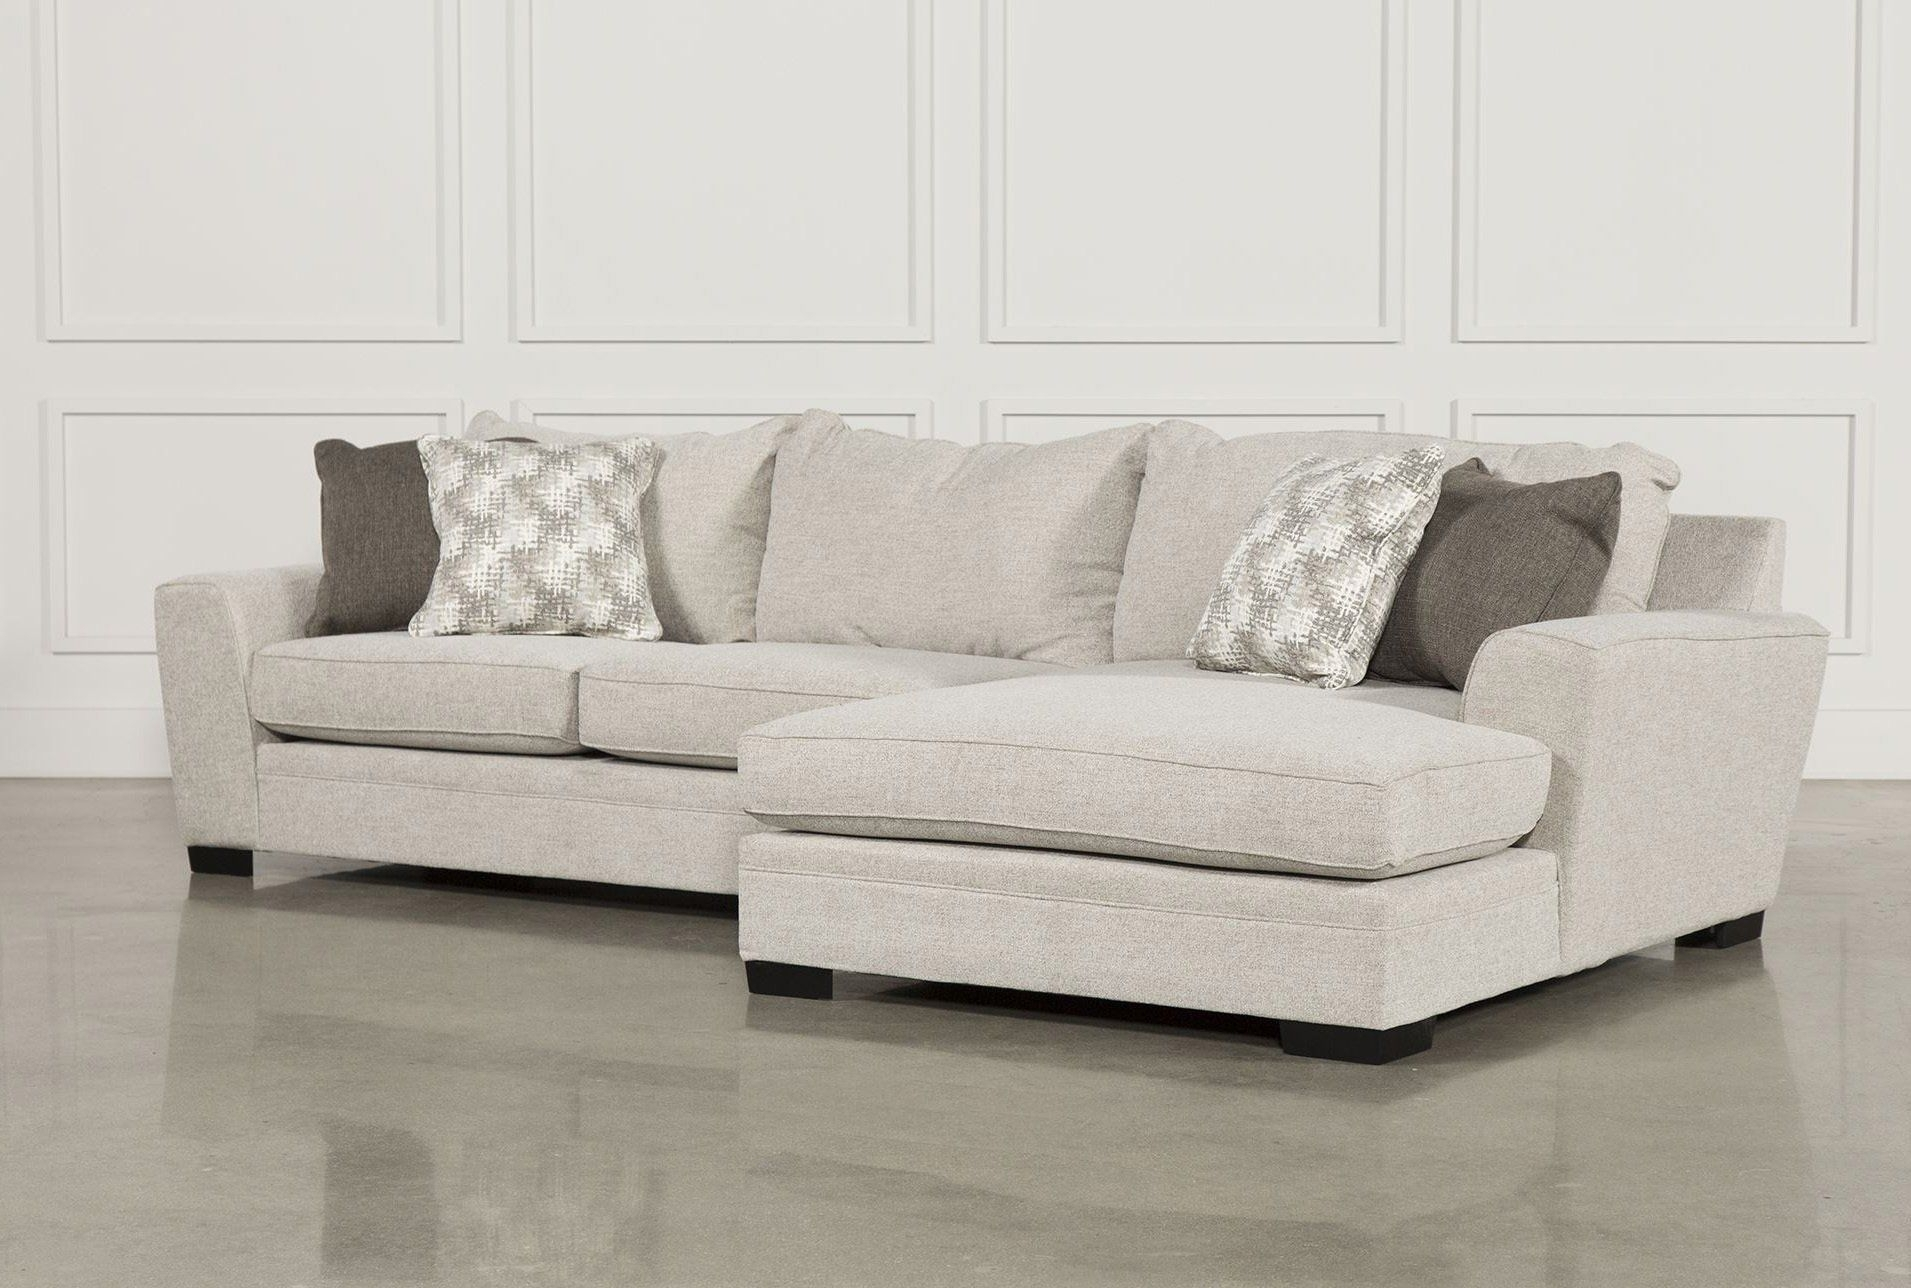 Delano 2 Piece Sectional W/raf Oversized Chaise | Products For Aspen 2 Piece Sleeper Sectionals With Laf Chaise (Image 11 of 25)